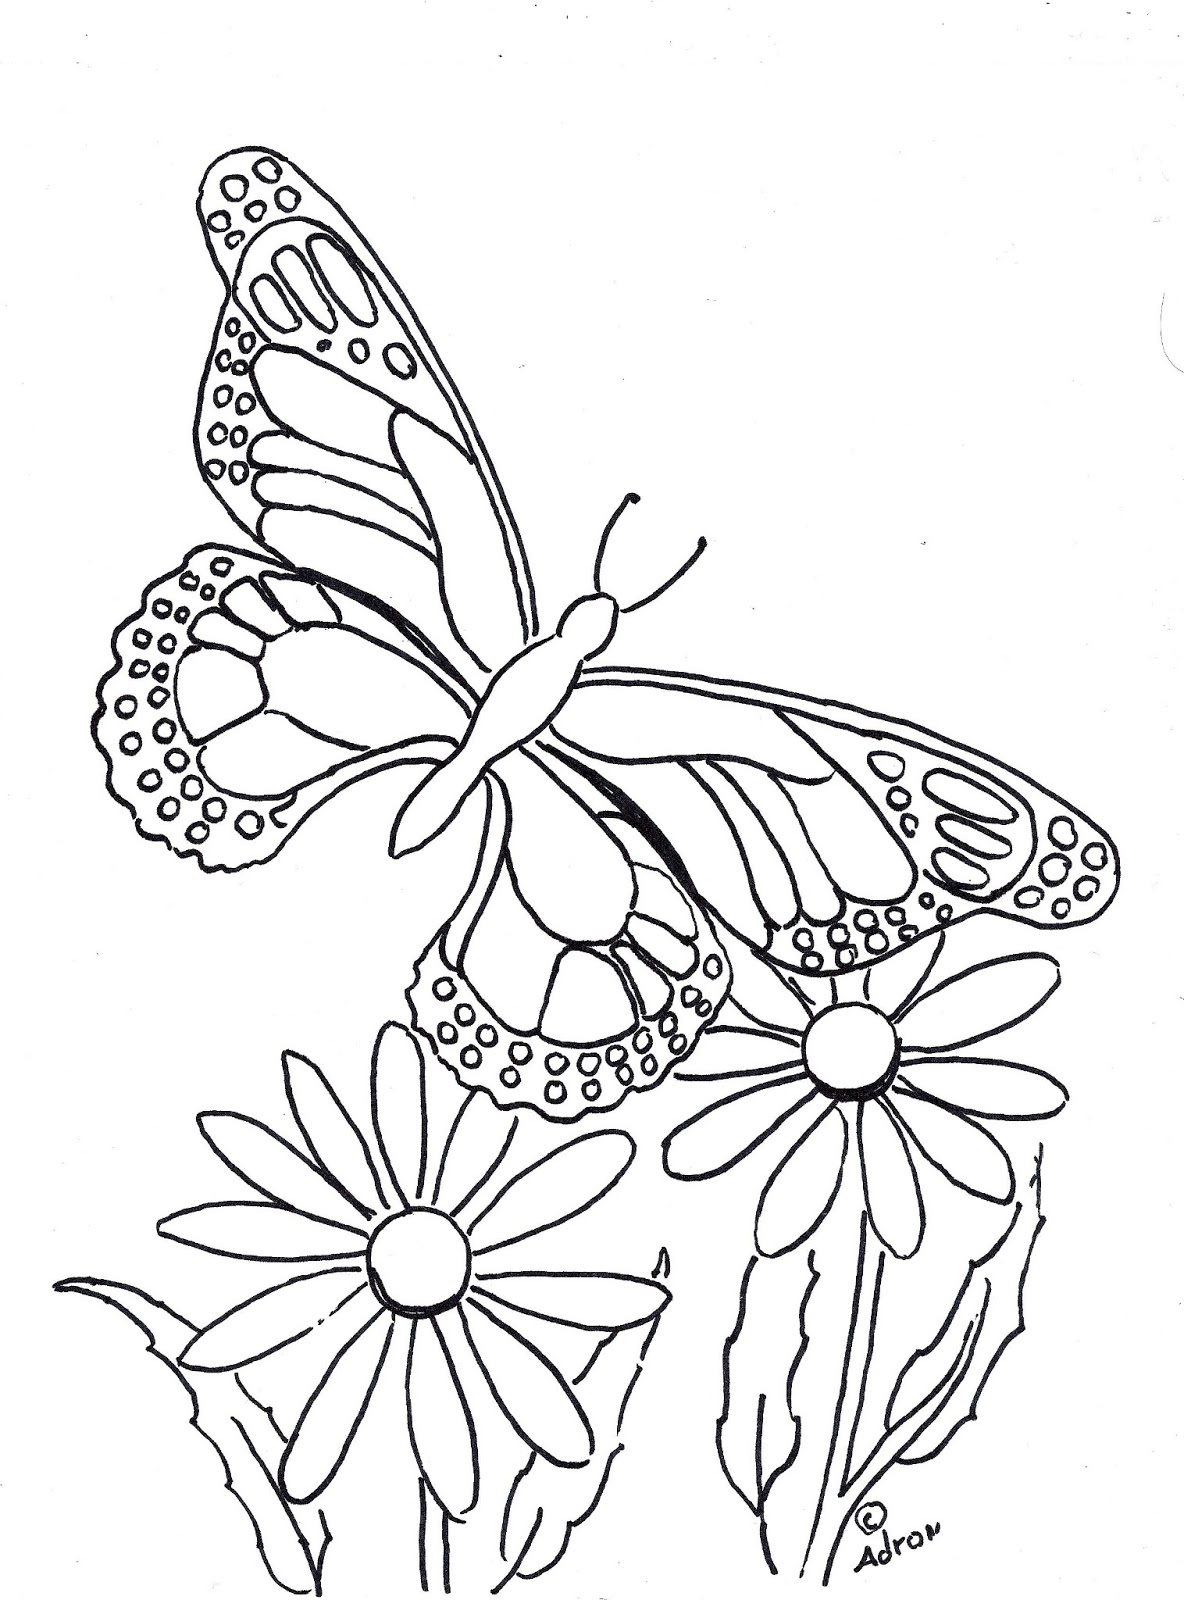 Coloring Pages For Kids By Mr. Adron: Butterfly Coloring